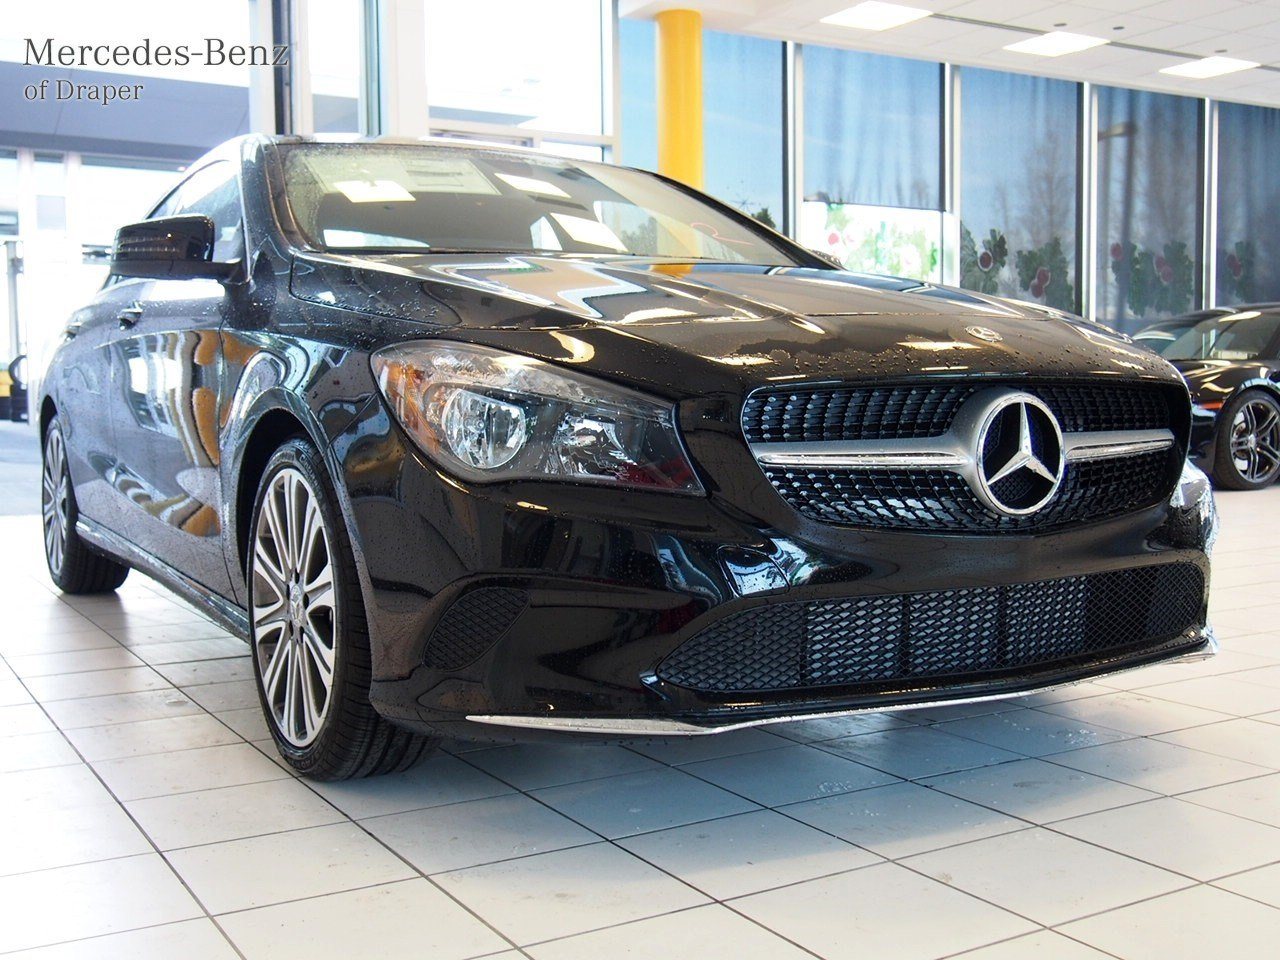 New 2018 mercedes benz cla cla 250 4matic coupe in draper for Mercedes benz cla 500